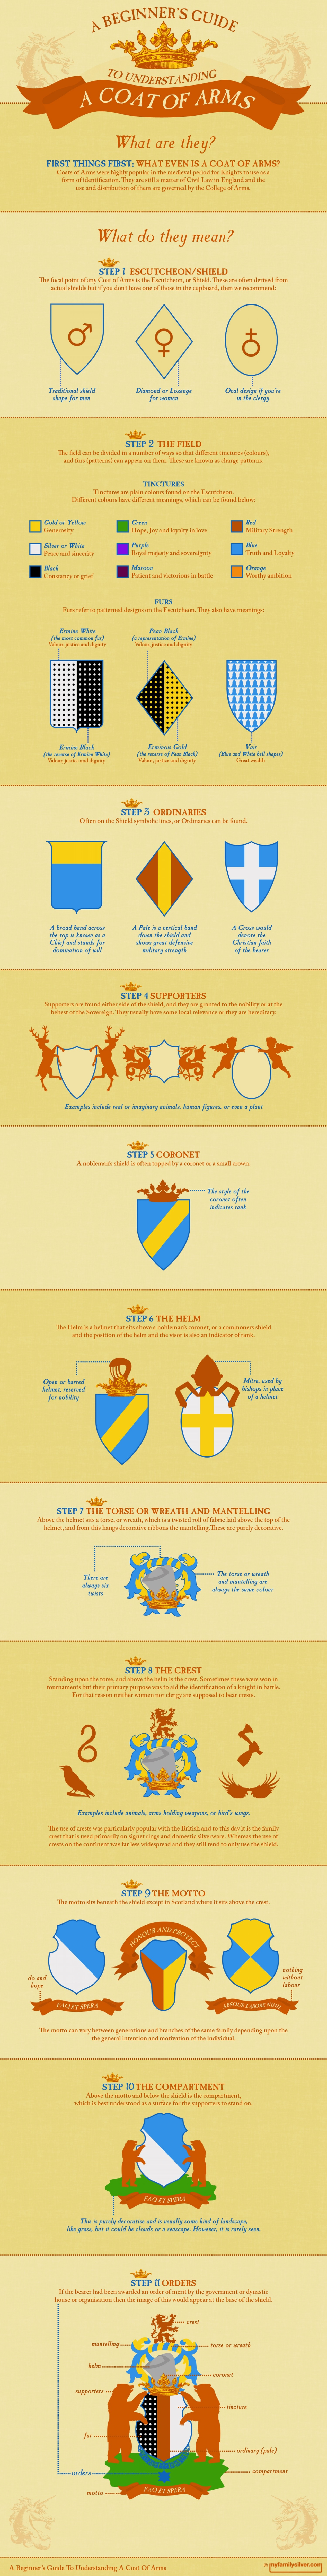 a-beginners-guide-to-undertsanding-a-coat-of-arms